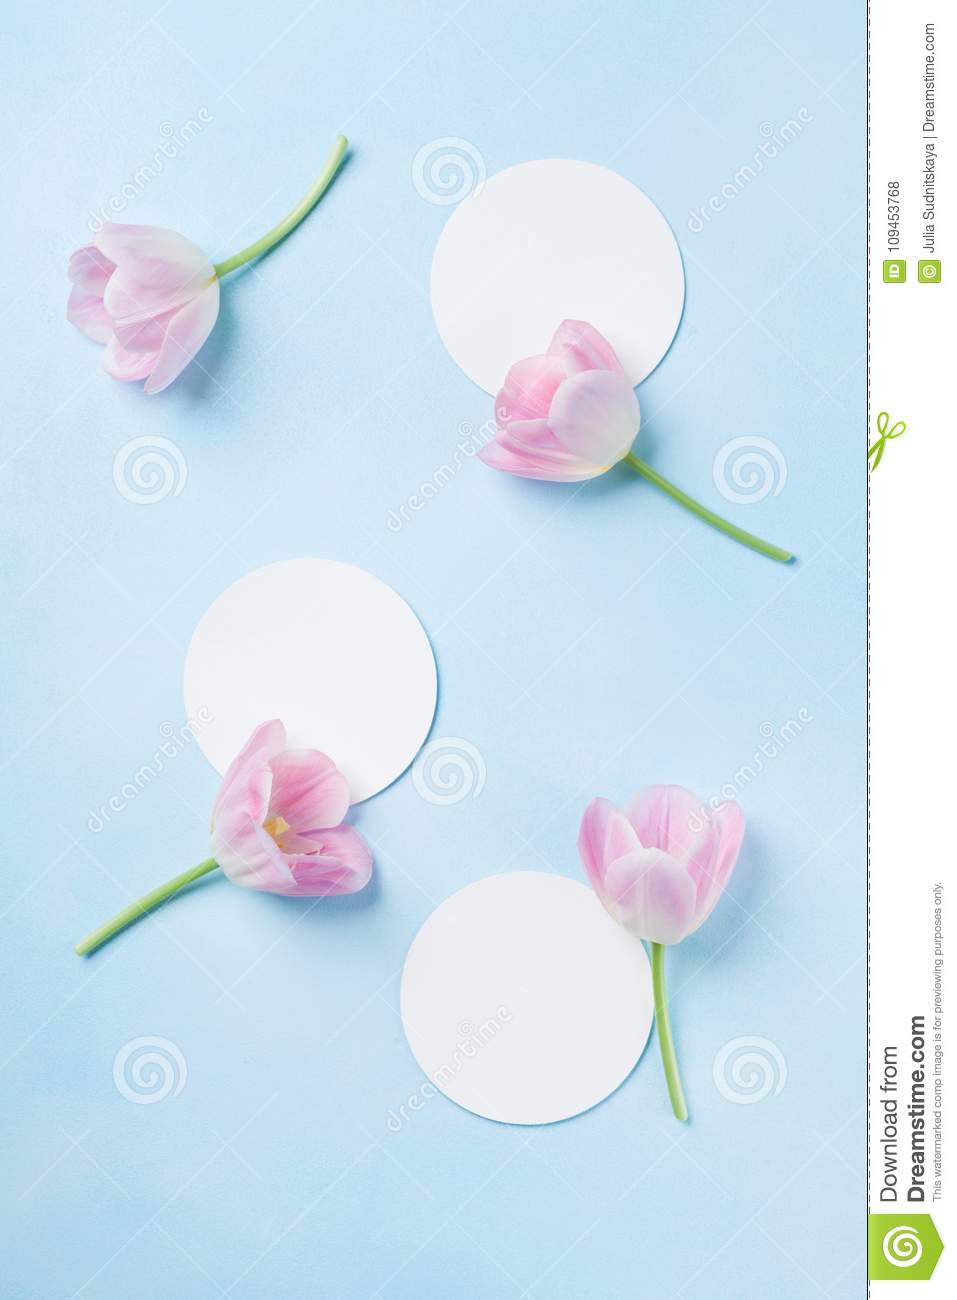 Planning or invitation concept with fresh pink tulip flowers on blue pastel background. Top view. Flat lay.